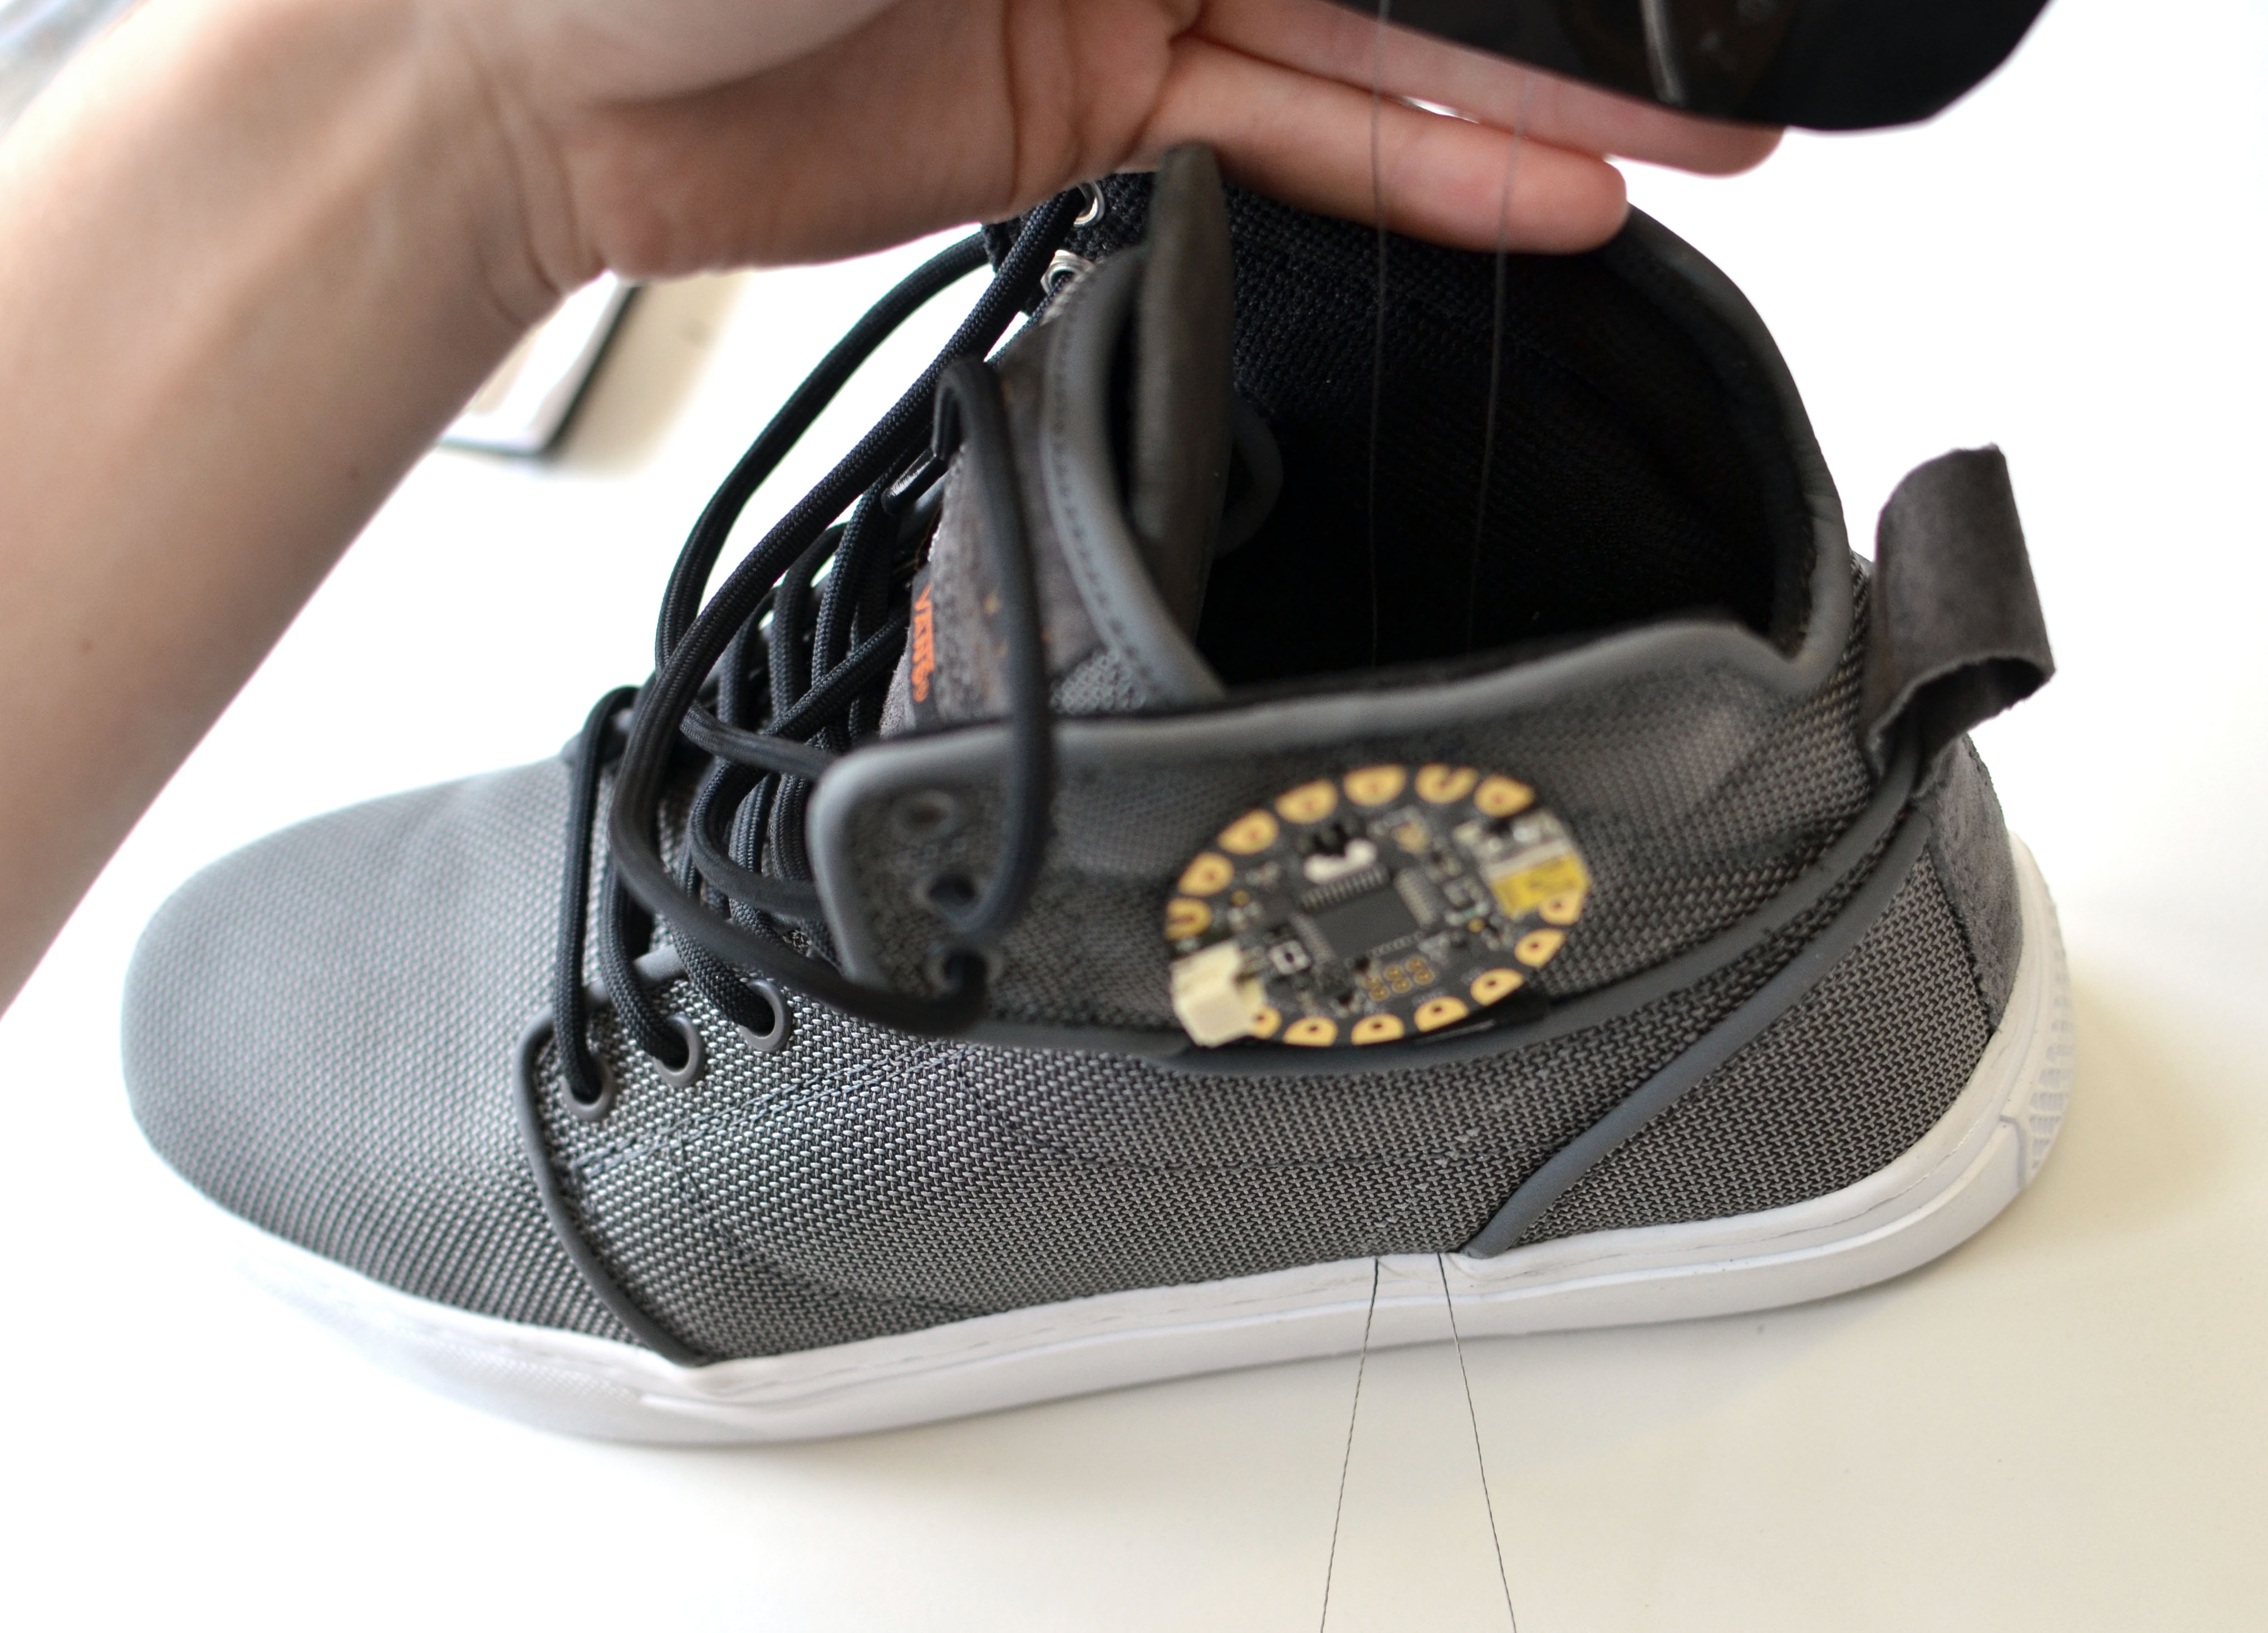 flora_firewalker-led-sneakers-adafruit-07.jpg